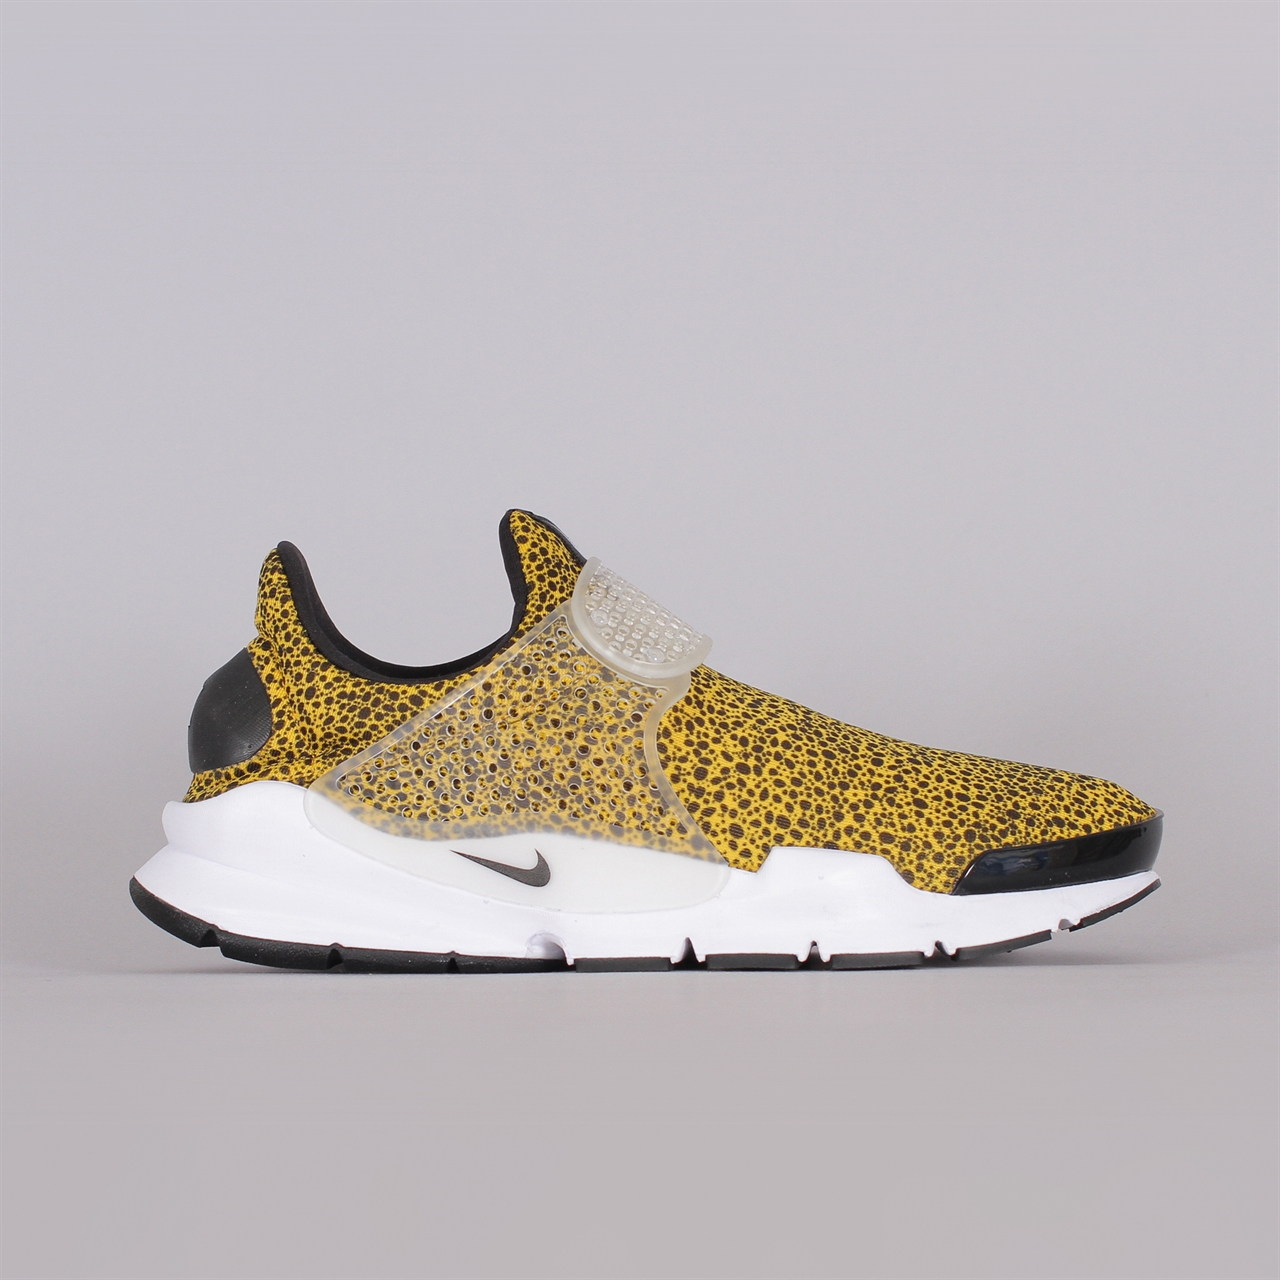 new products dd6ad 4ece9 nike sportswear sock dart quickstrike 942198 700